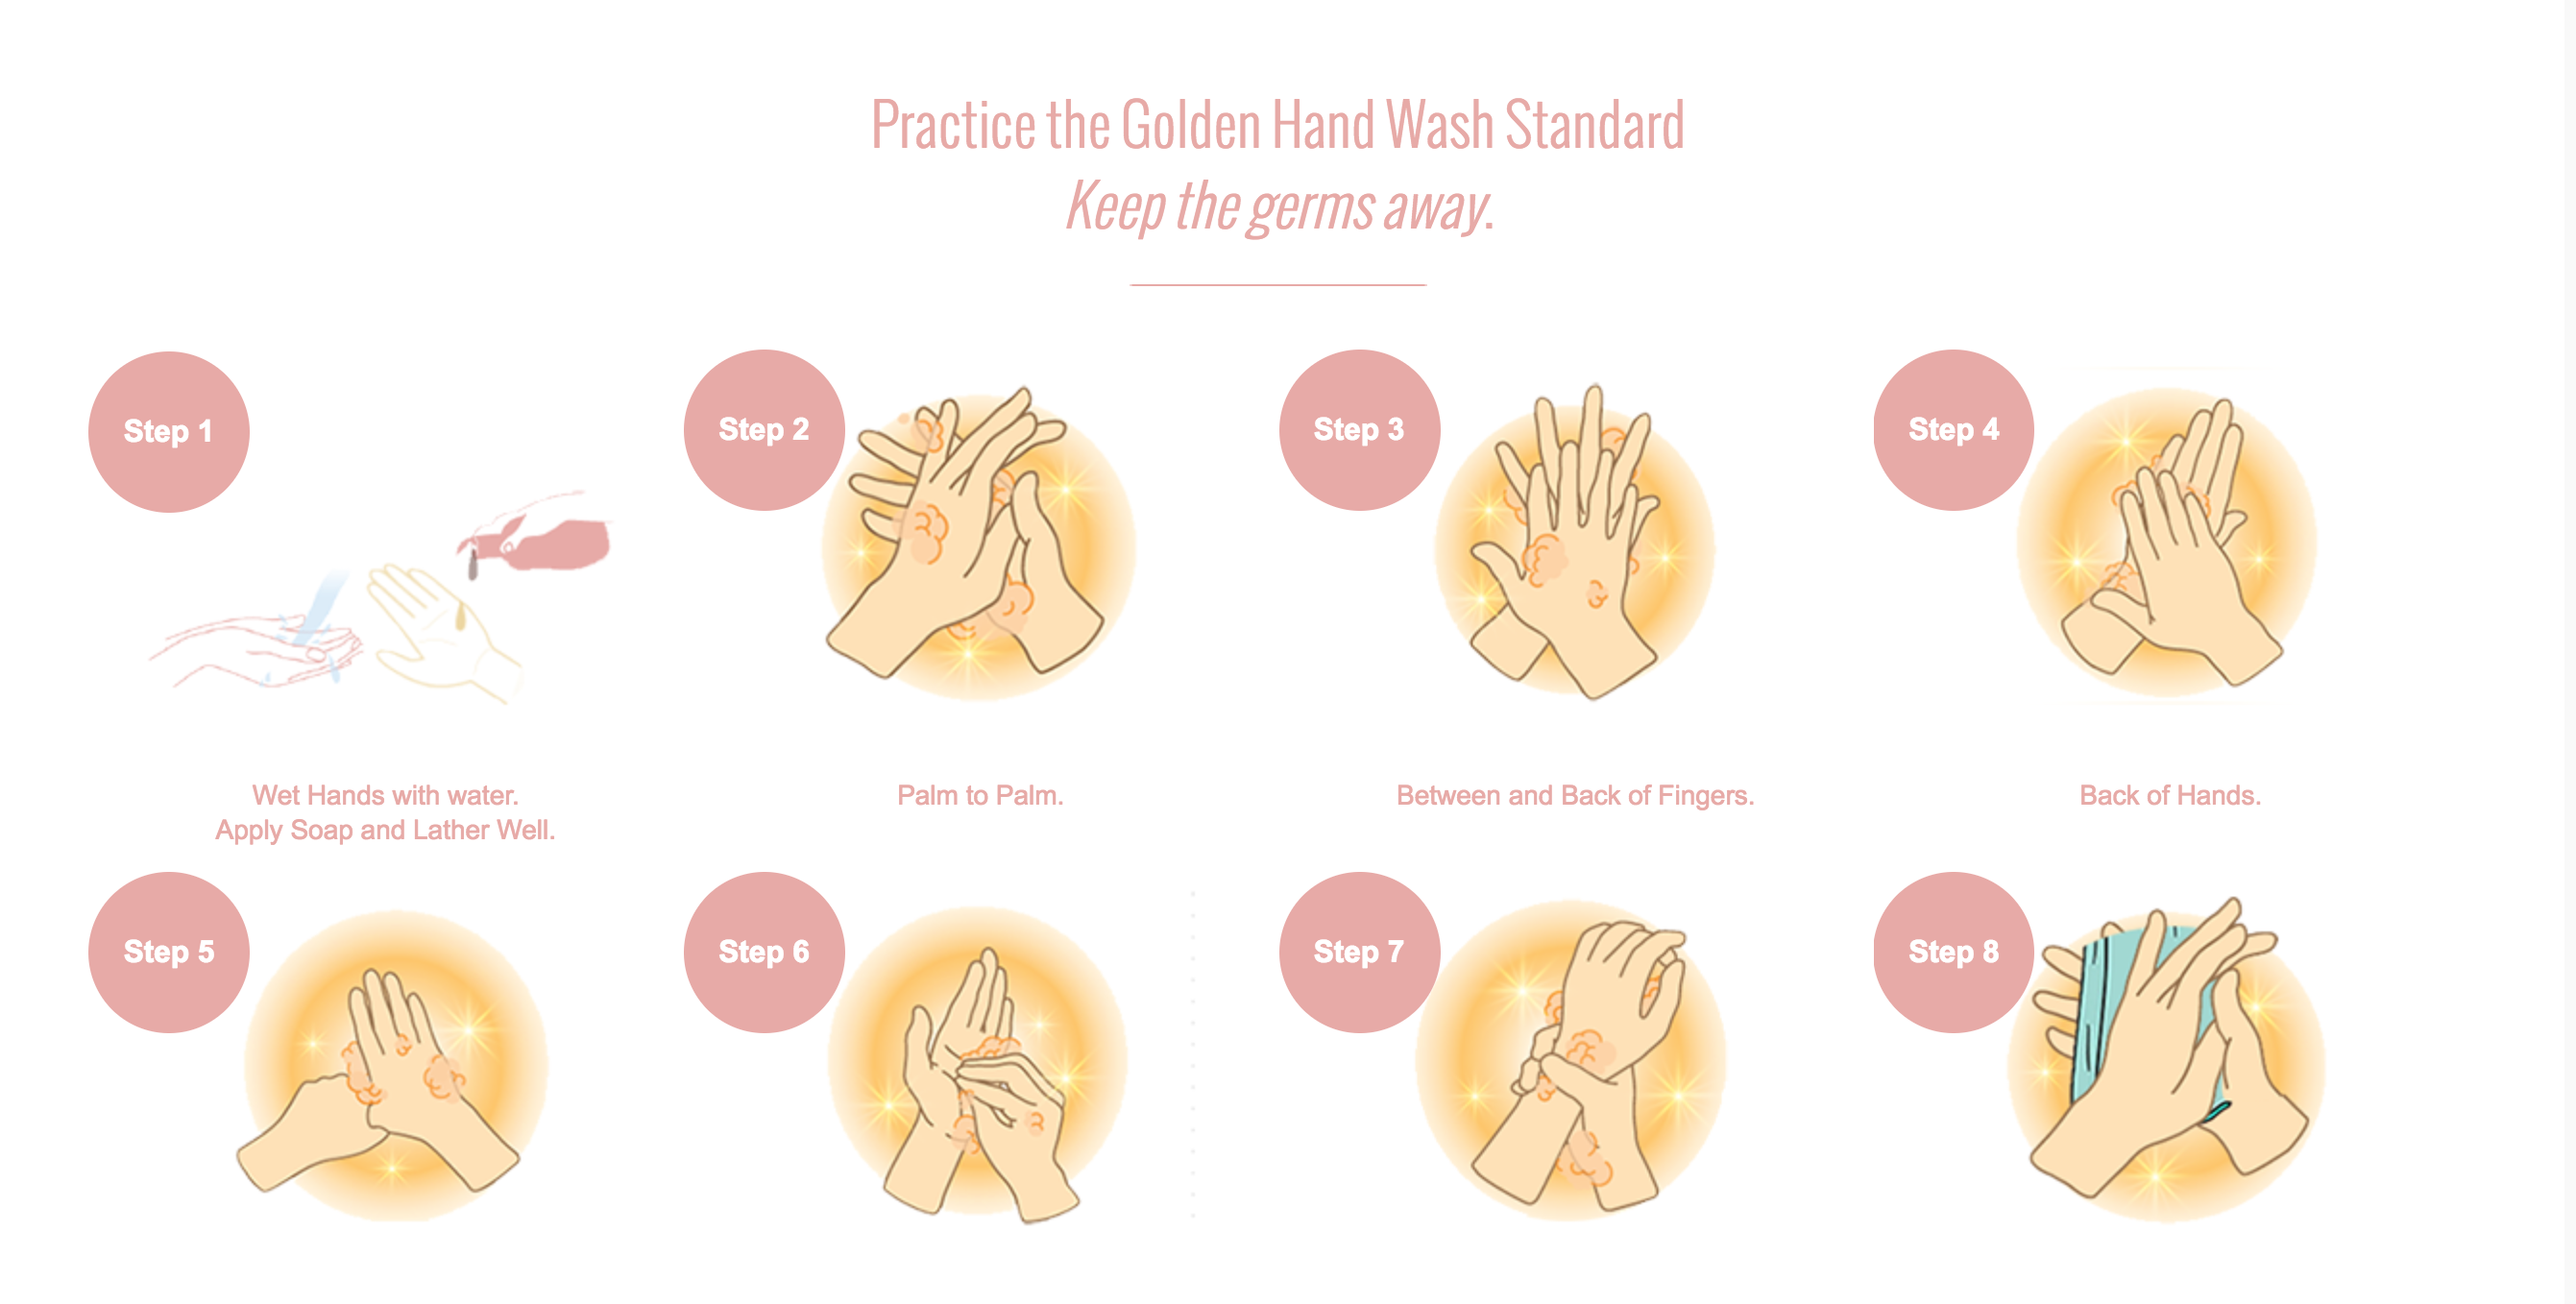 Practice the Golden Hand Wash Standard. Keep the germs away.